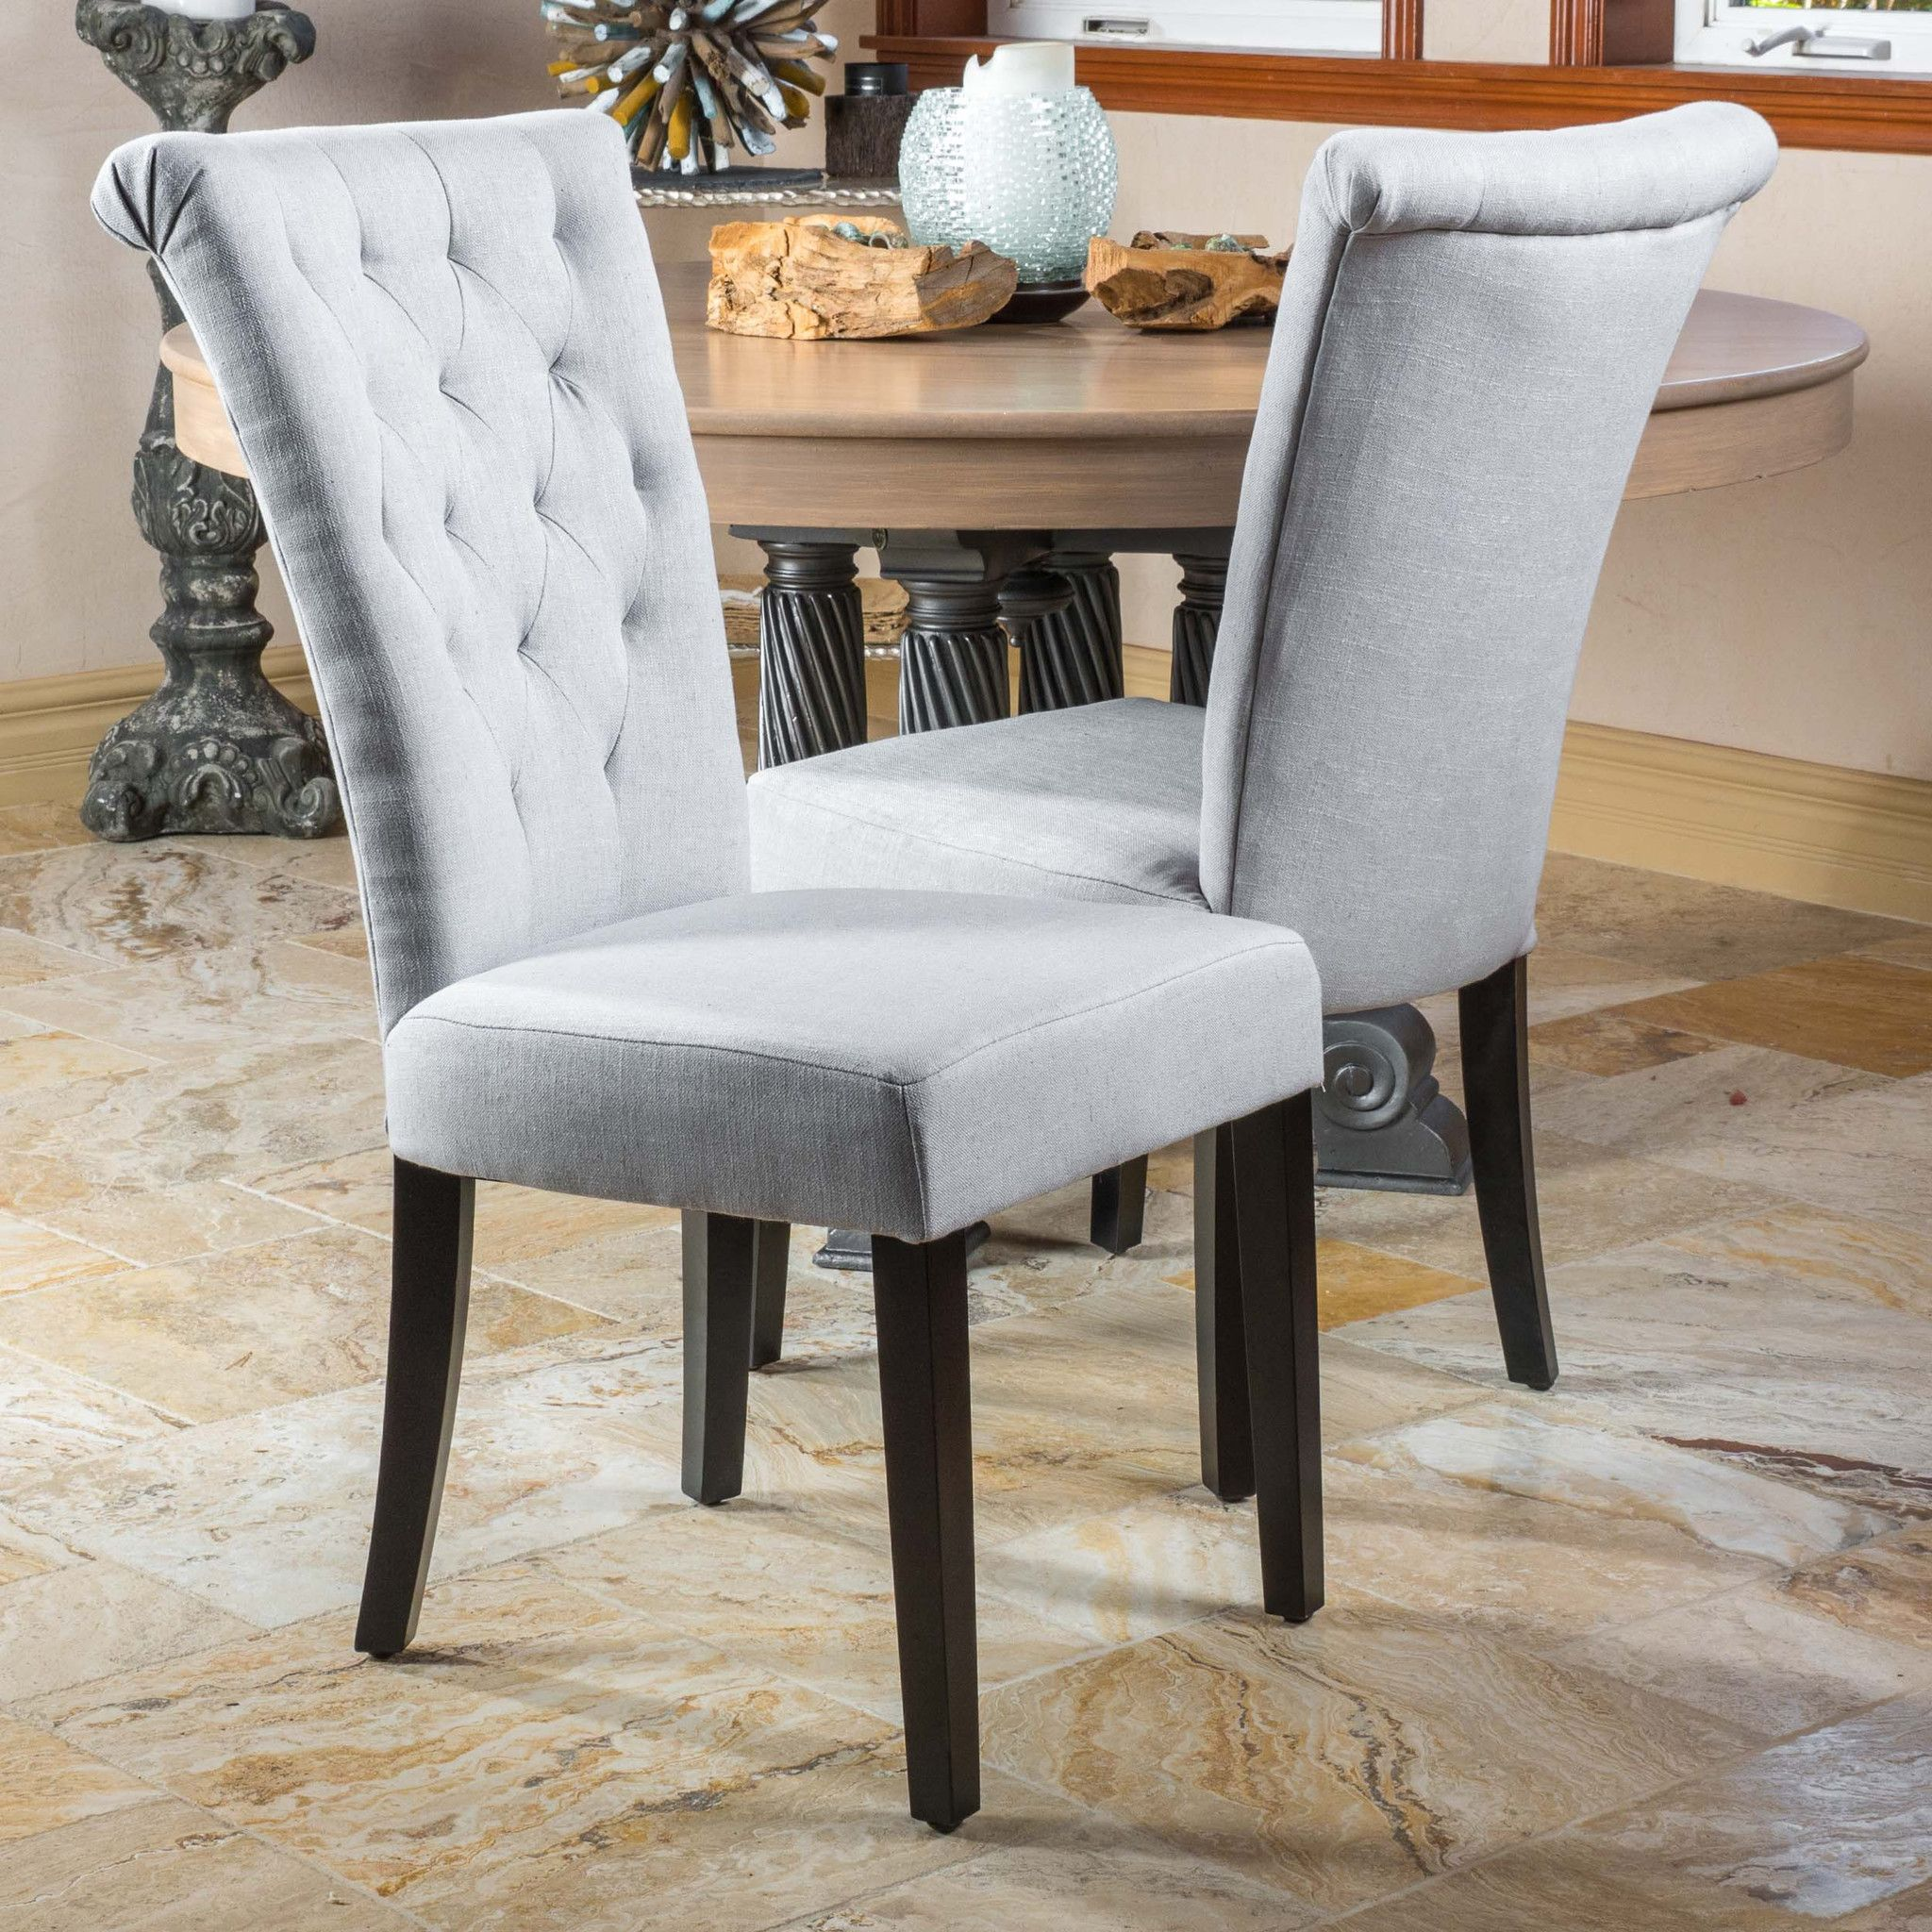 Paulina Fabric Dining Chairs Set Of 2 Tufted Dining Chairs Fabric Dining Chairs Dining Chairs